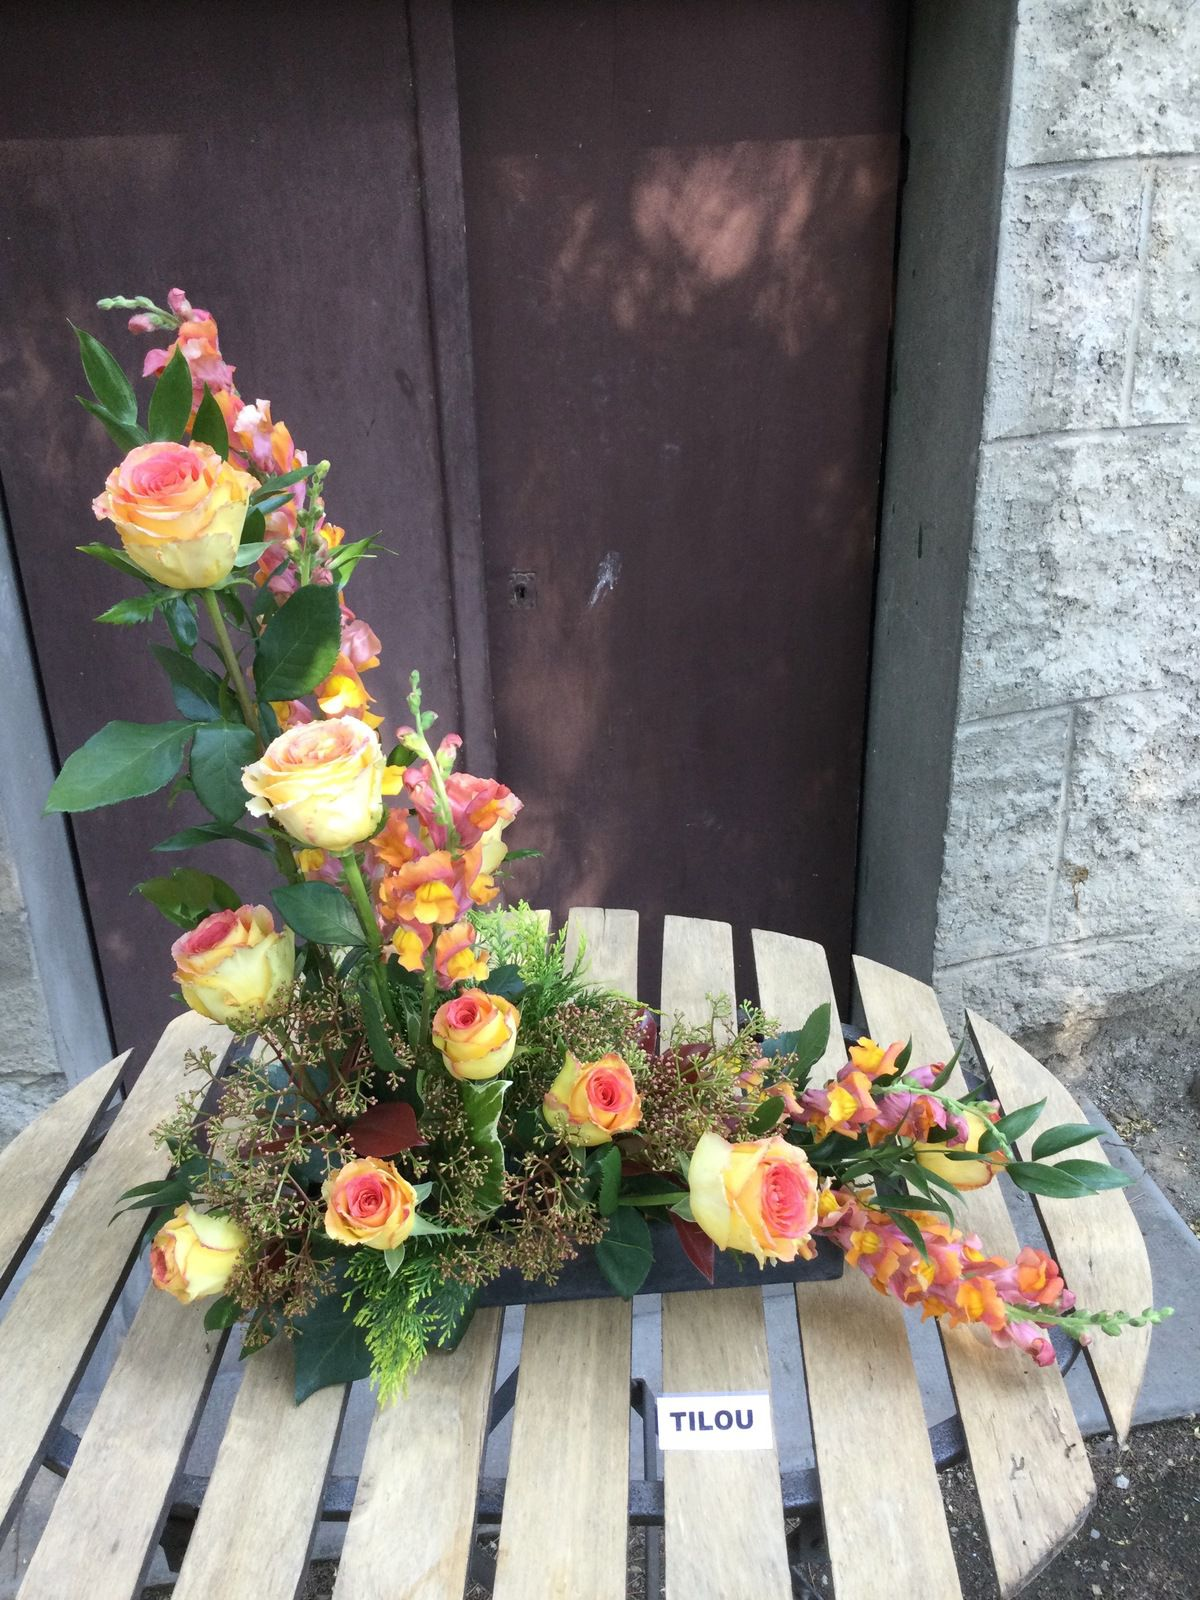 Roses, Muflier, Lierre, Ruscus, Cothynia,